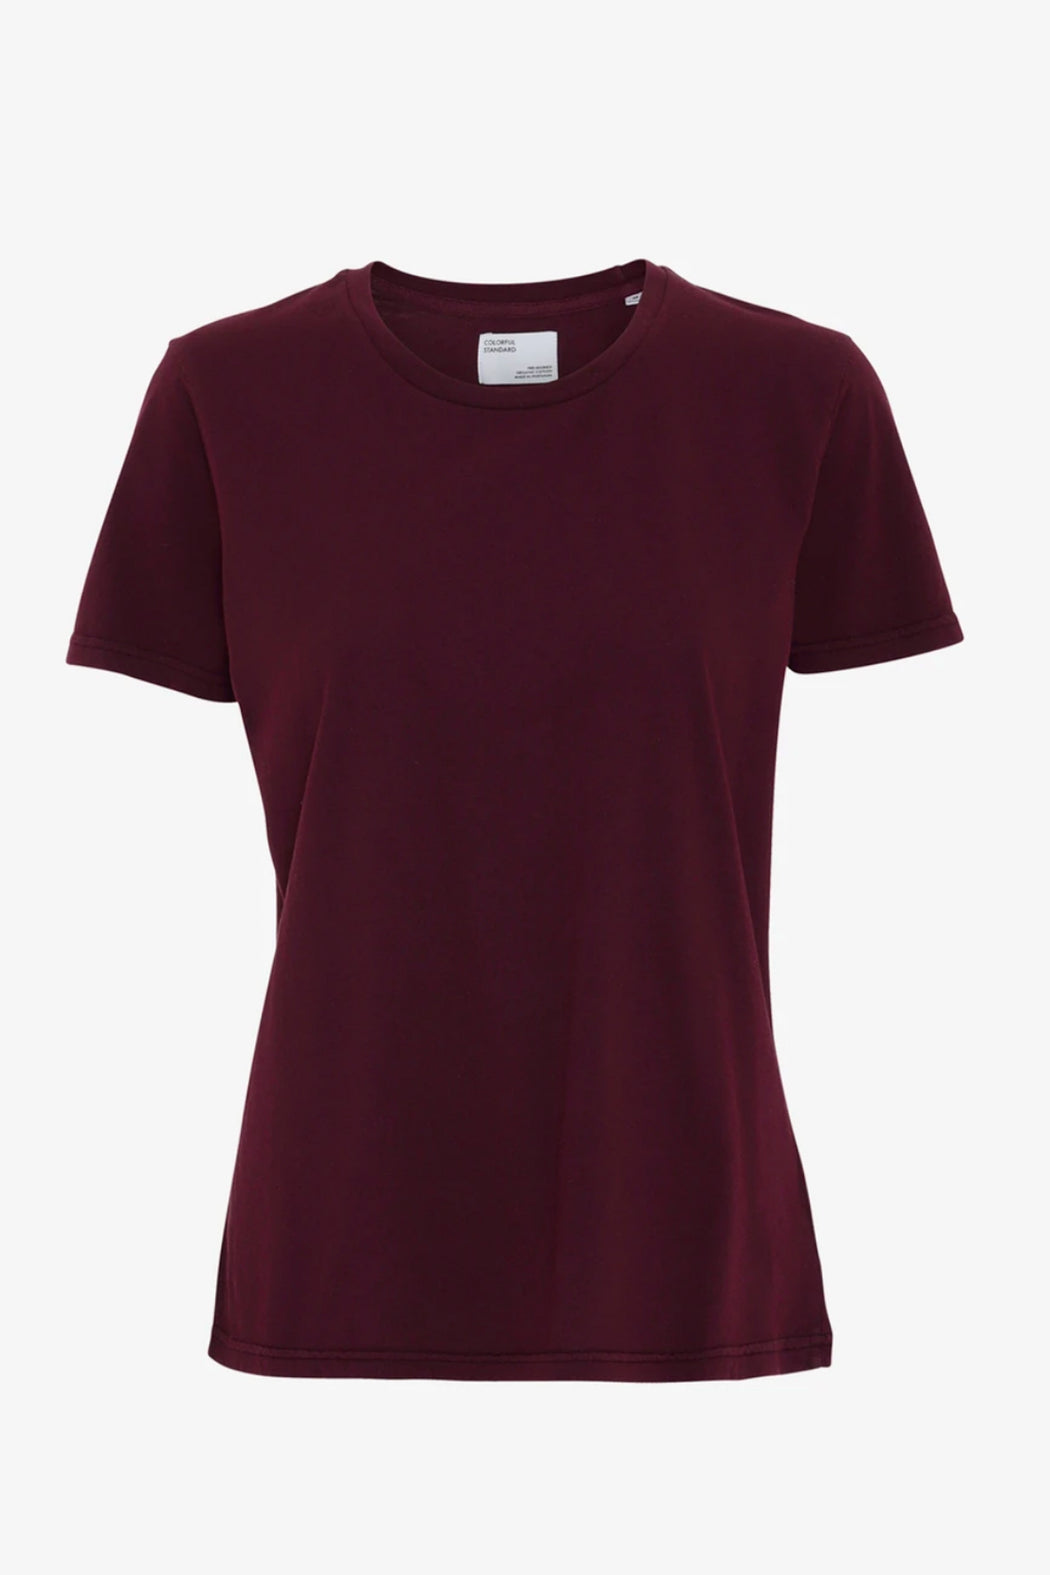 WOMAN LIGHT ORGANIC Tee oxblood red